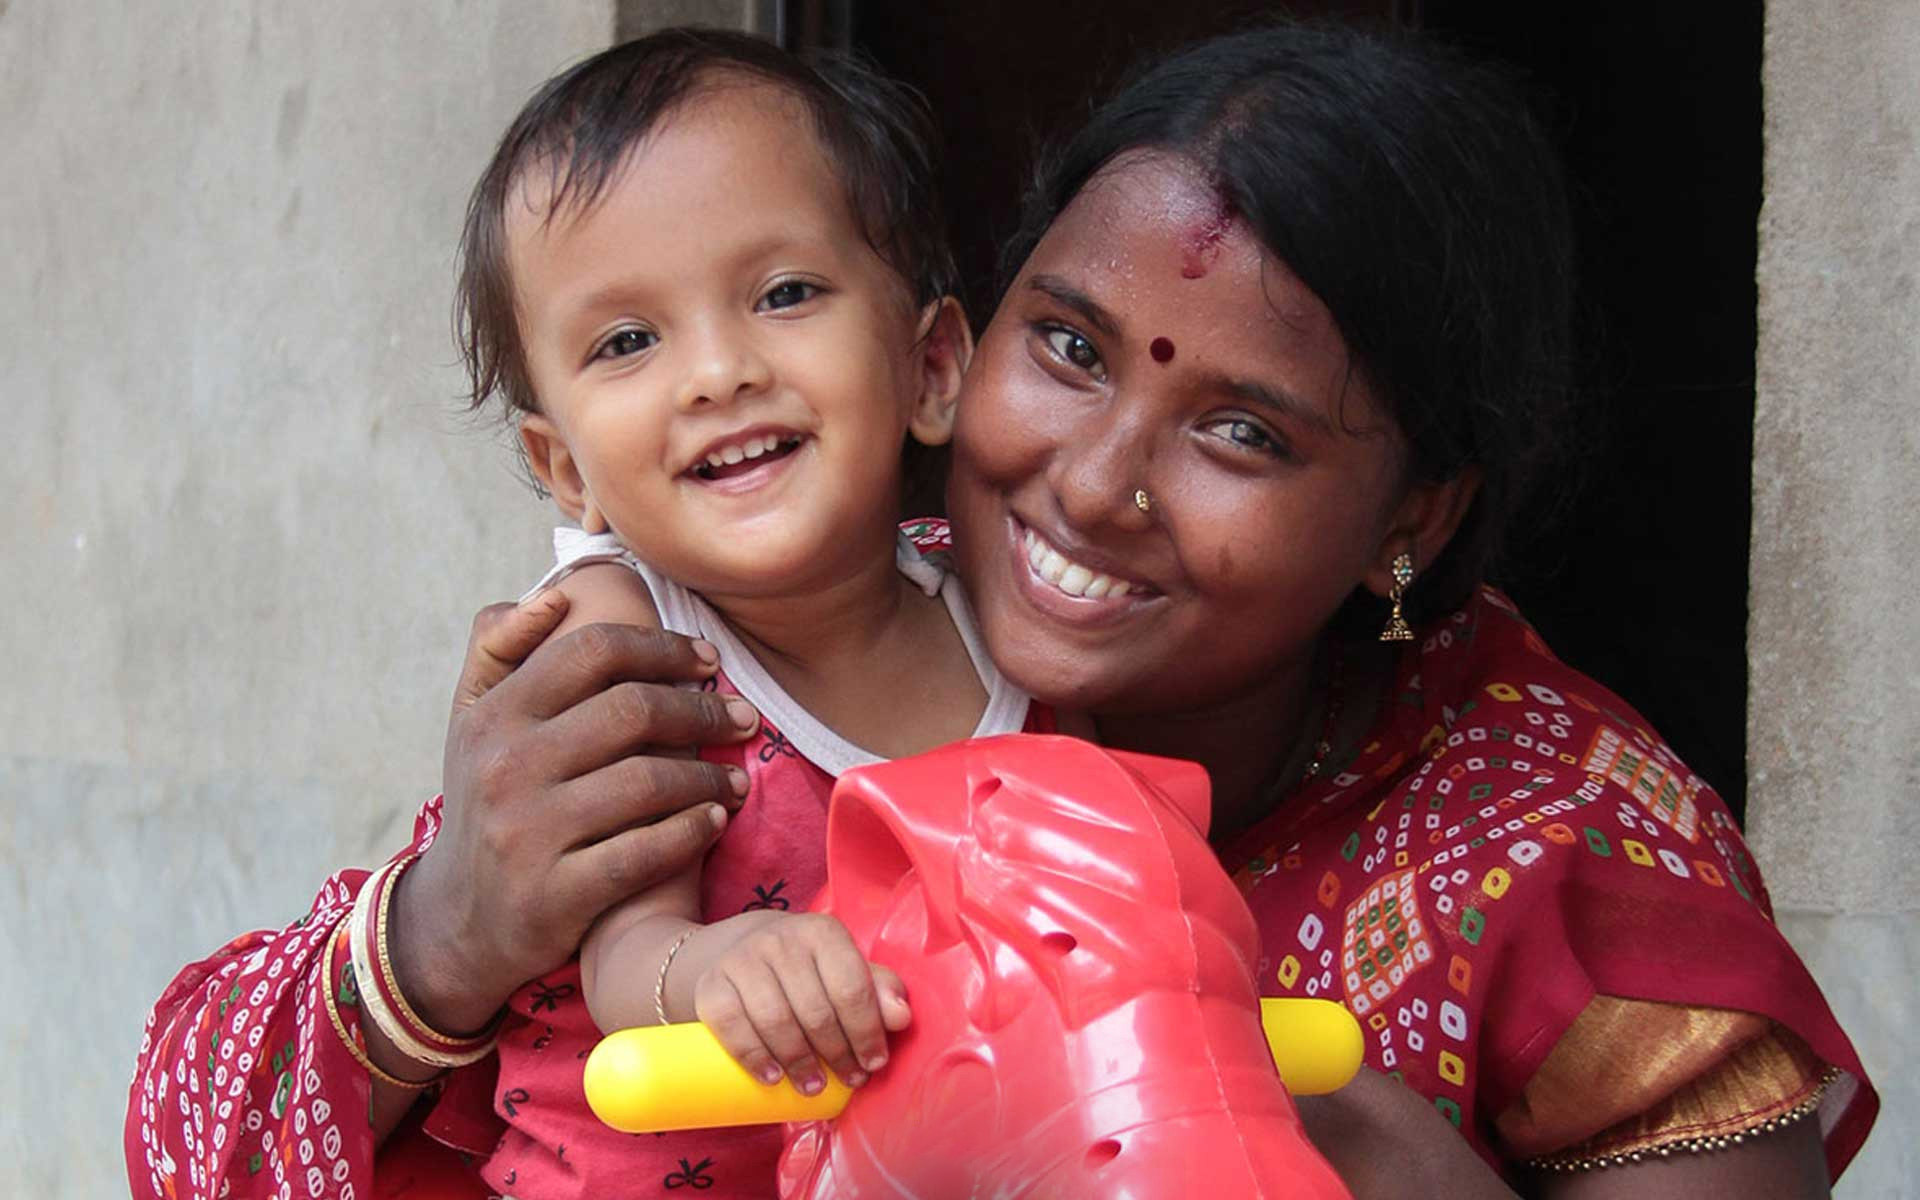 A mother plays with her daughter outside their home in India